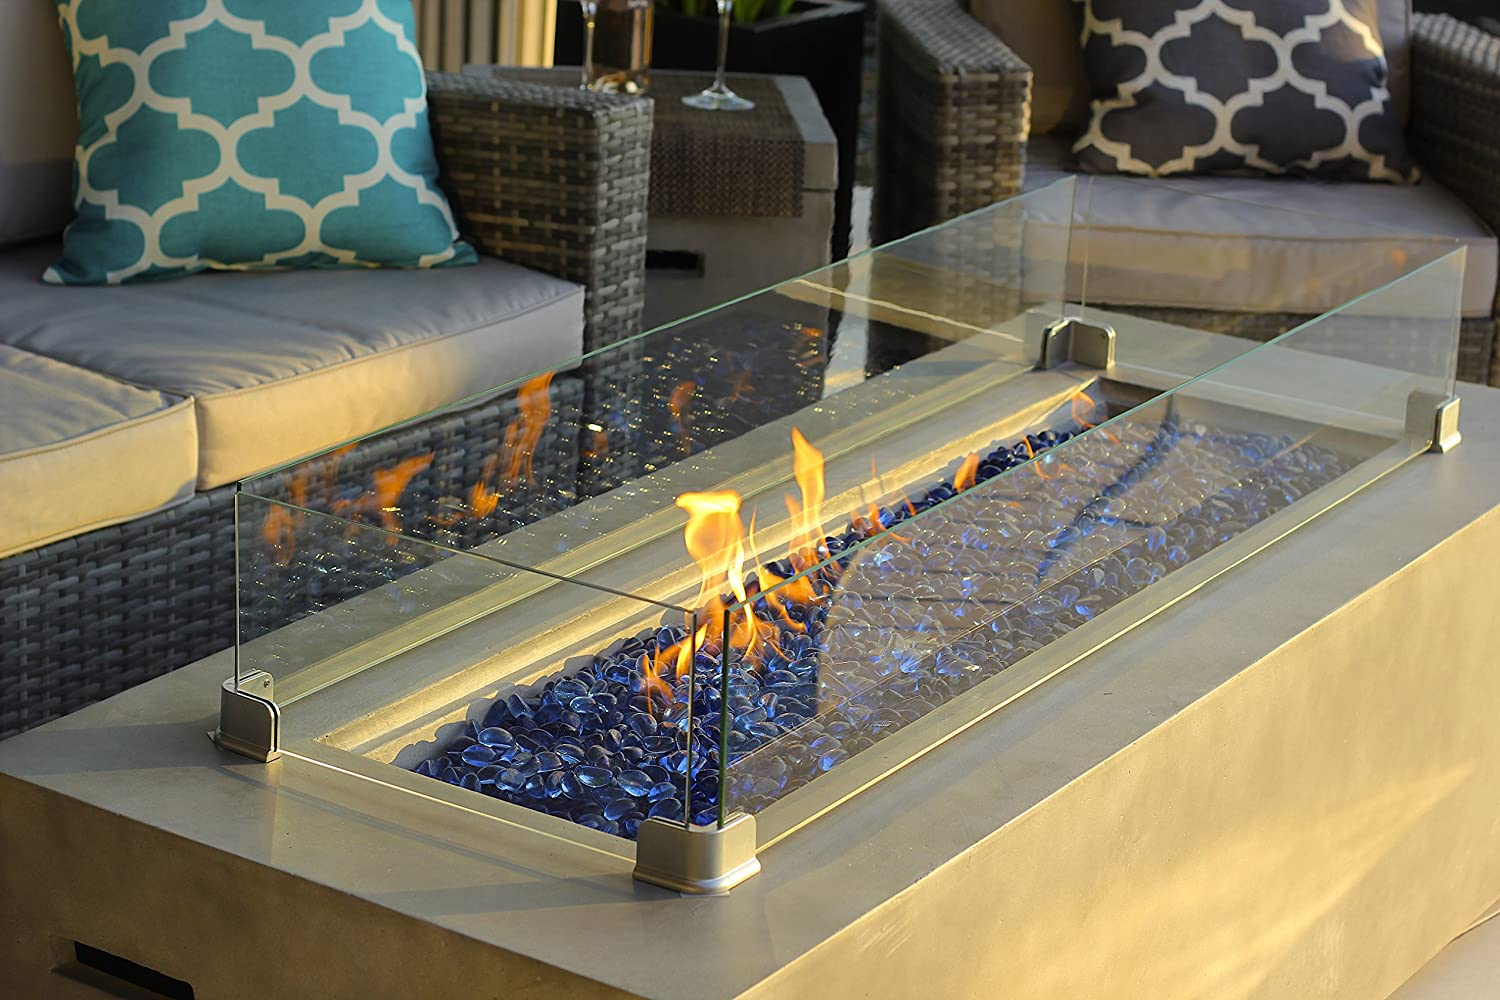 AKOYA Outdoor Essentials 60 Rectangular Modern Concrete Fire Pit Table w//Glass Guard and Crystals in Gray Cobalt Blue